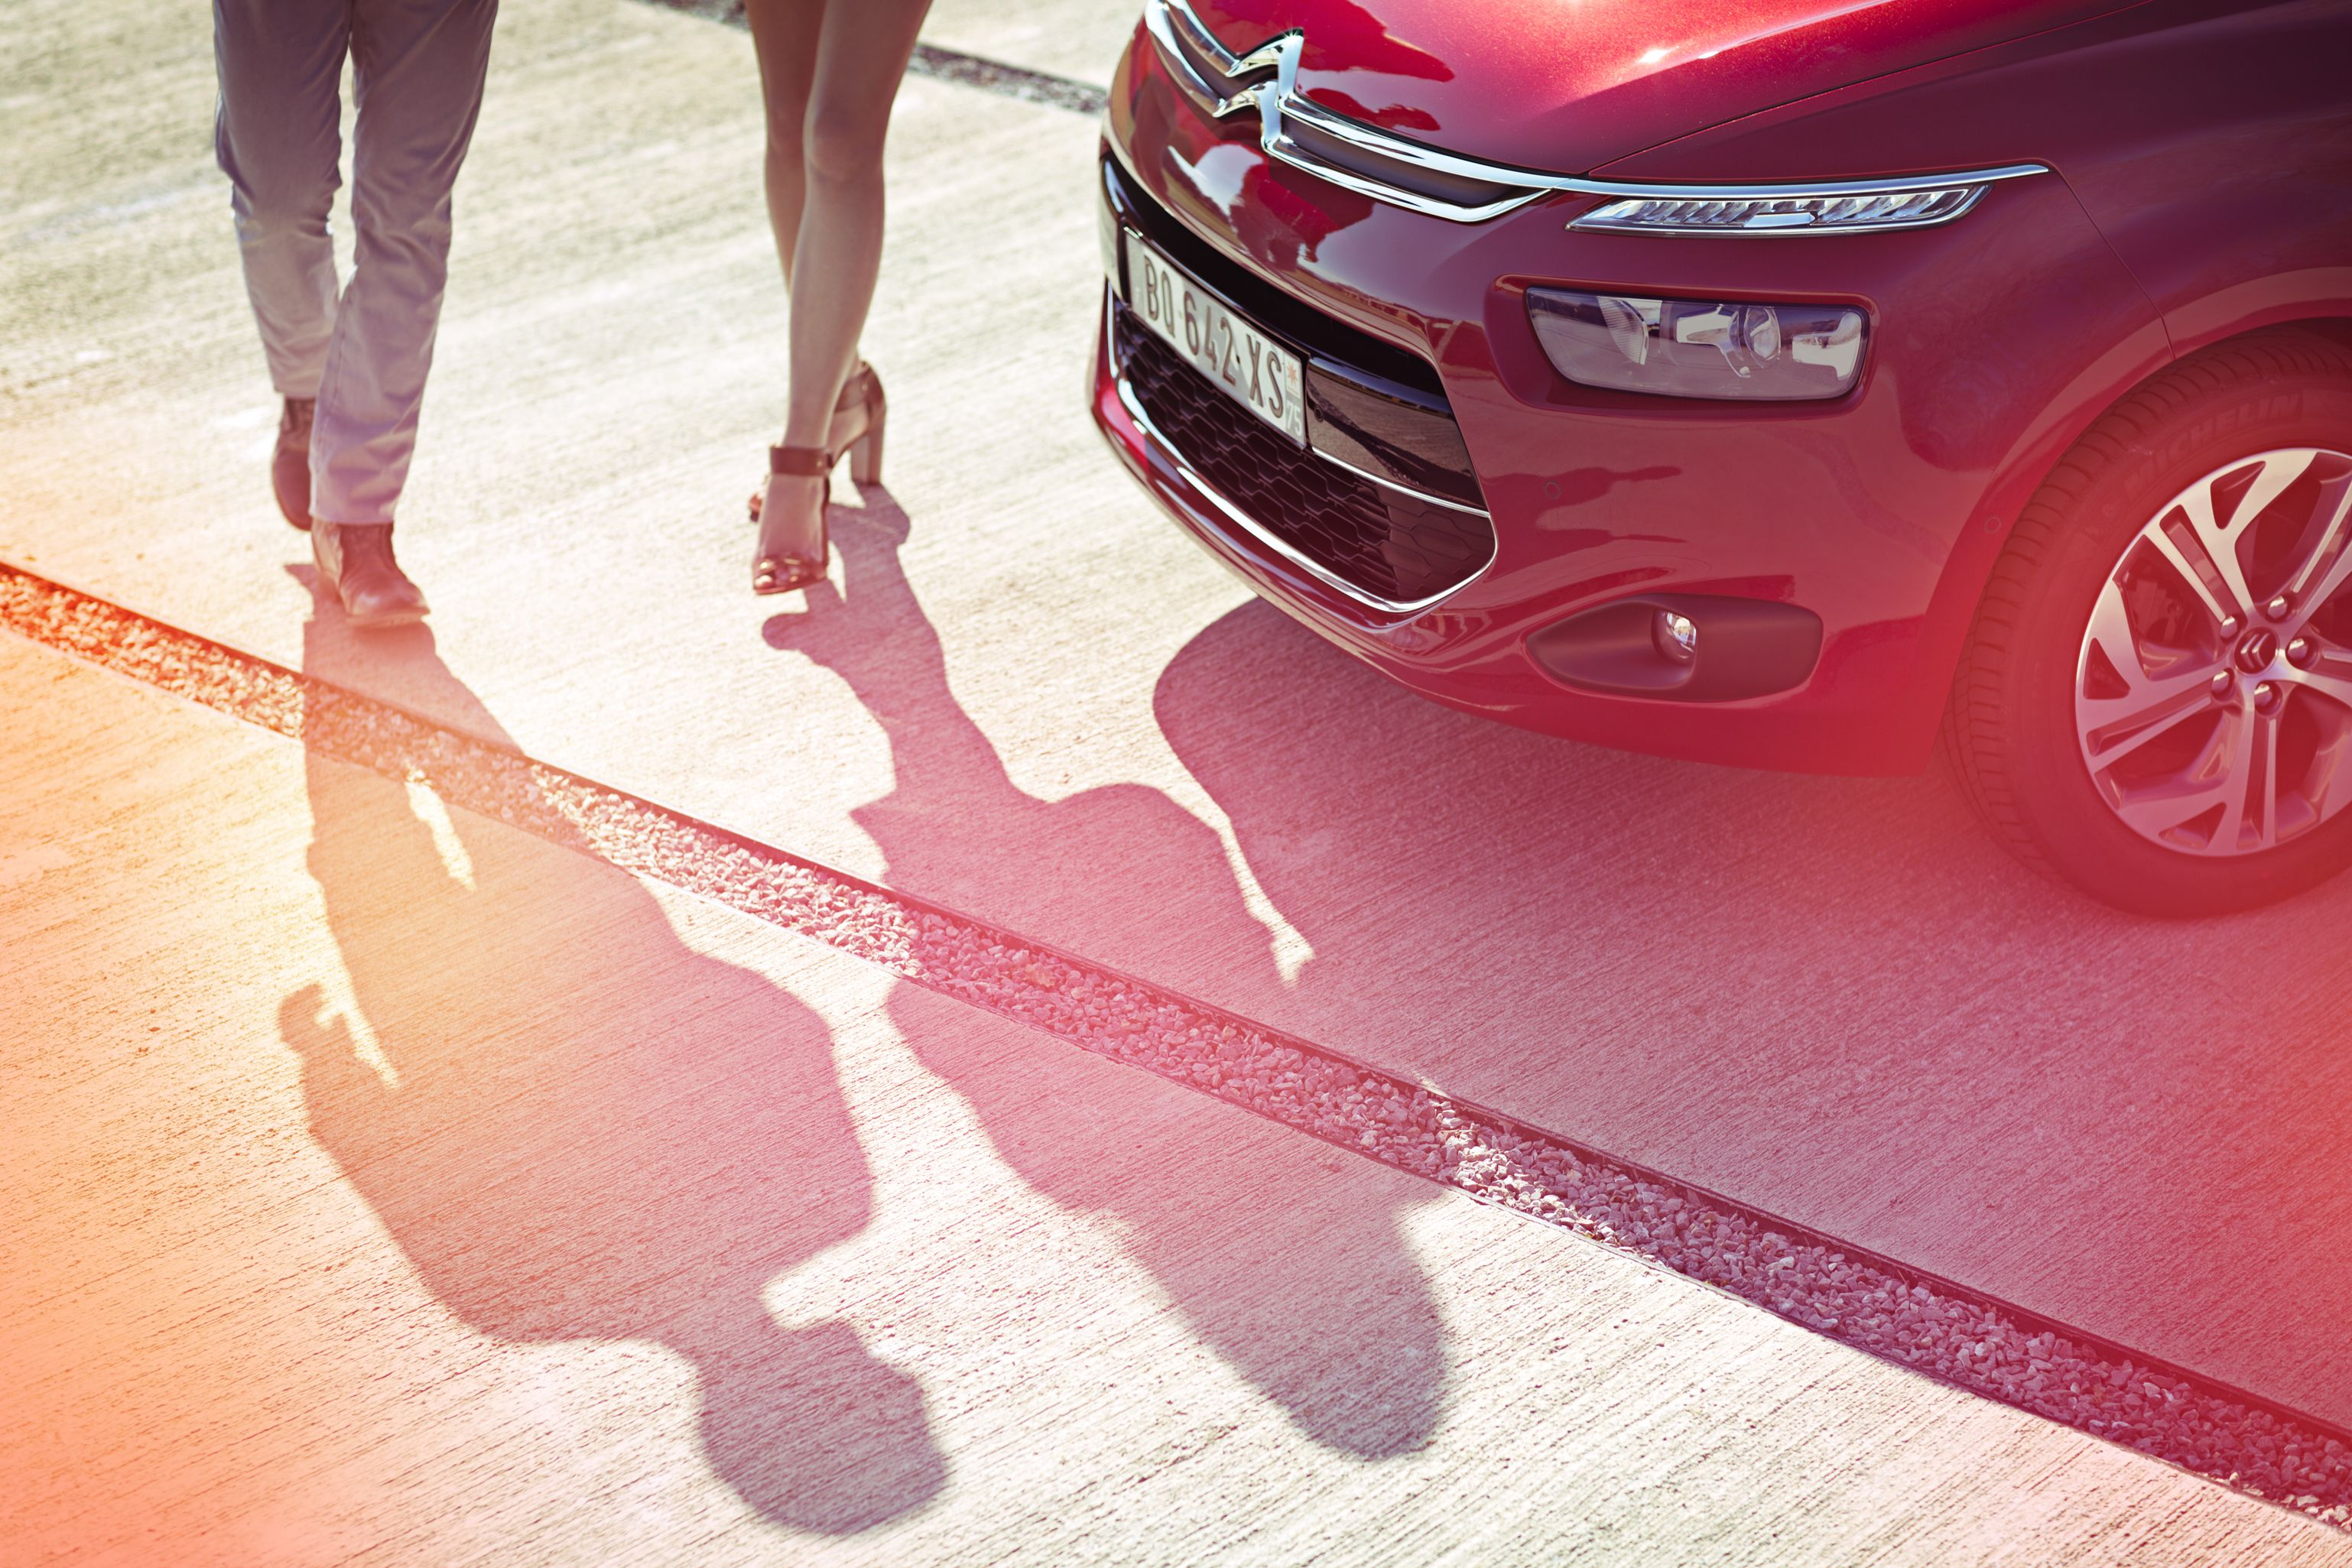 The new Citroën C4 Picasso.